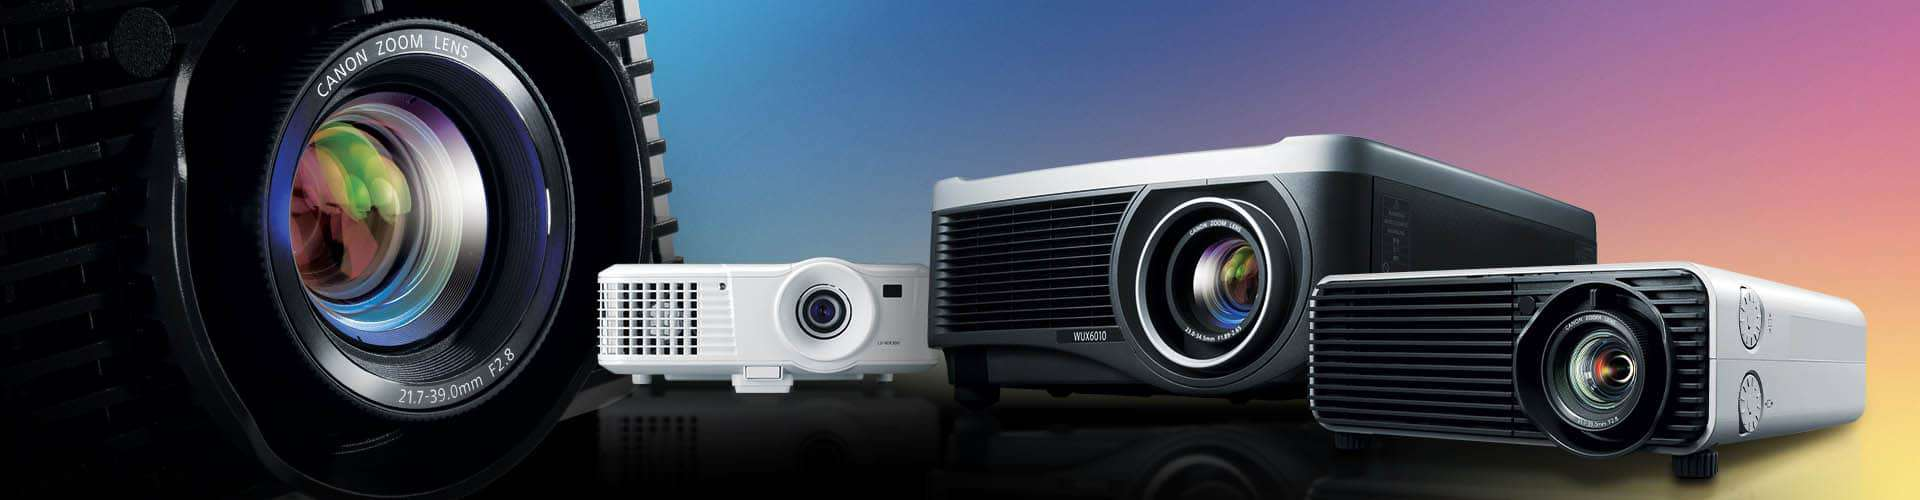 Best Gaming Projector 2019 – Ultimate Buyer's Guide